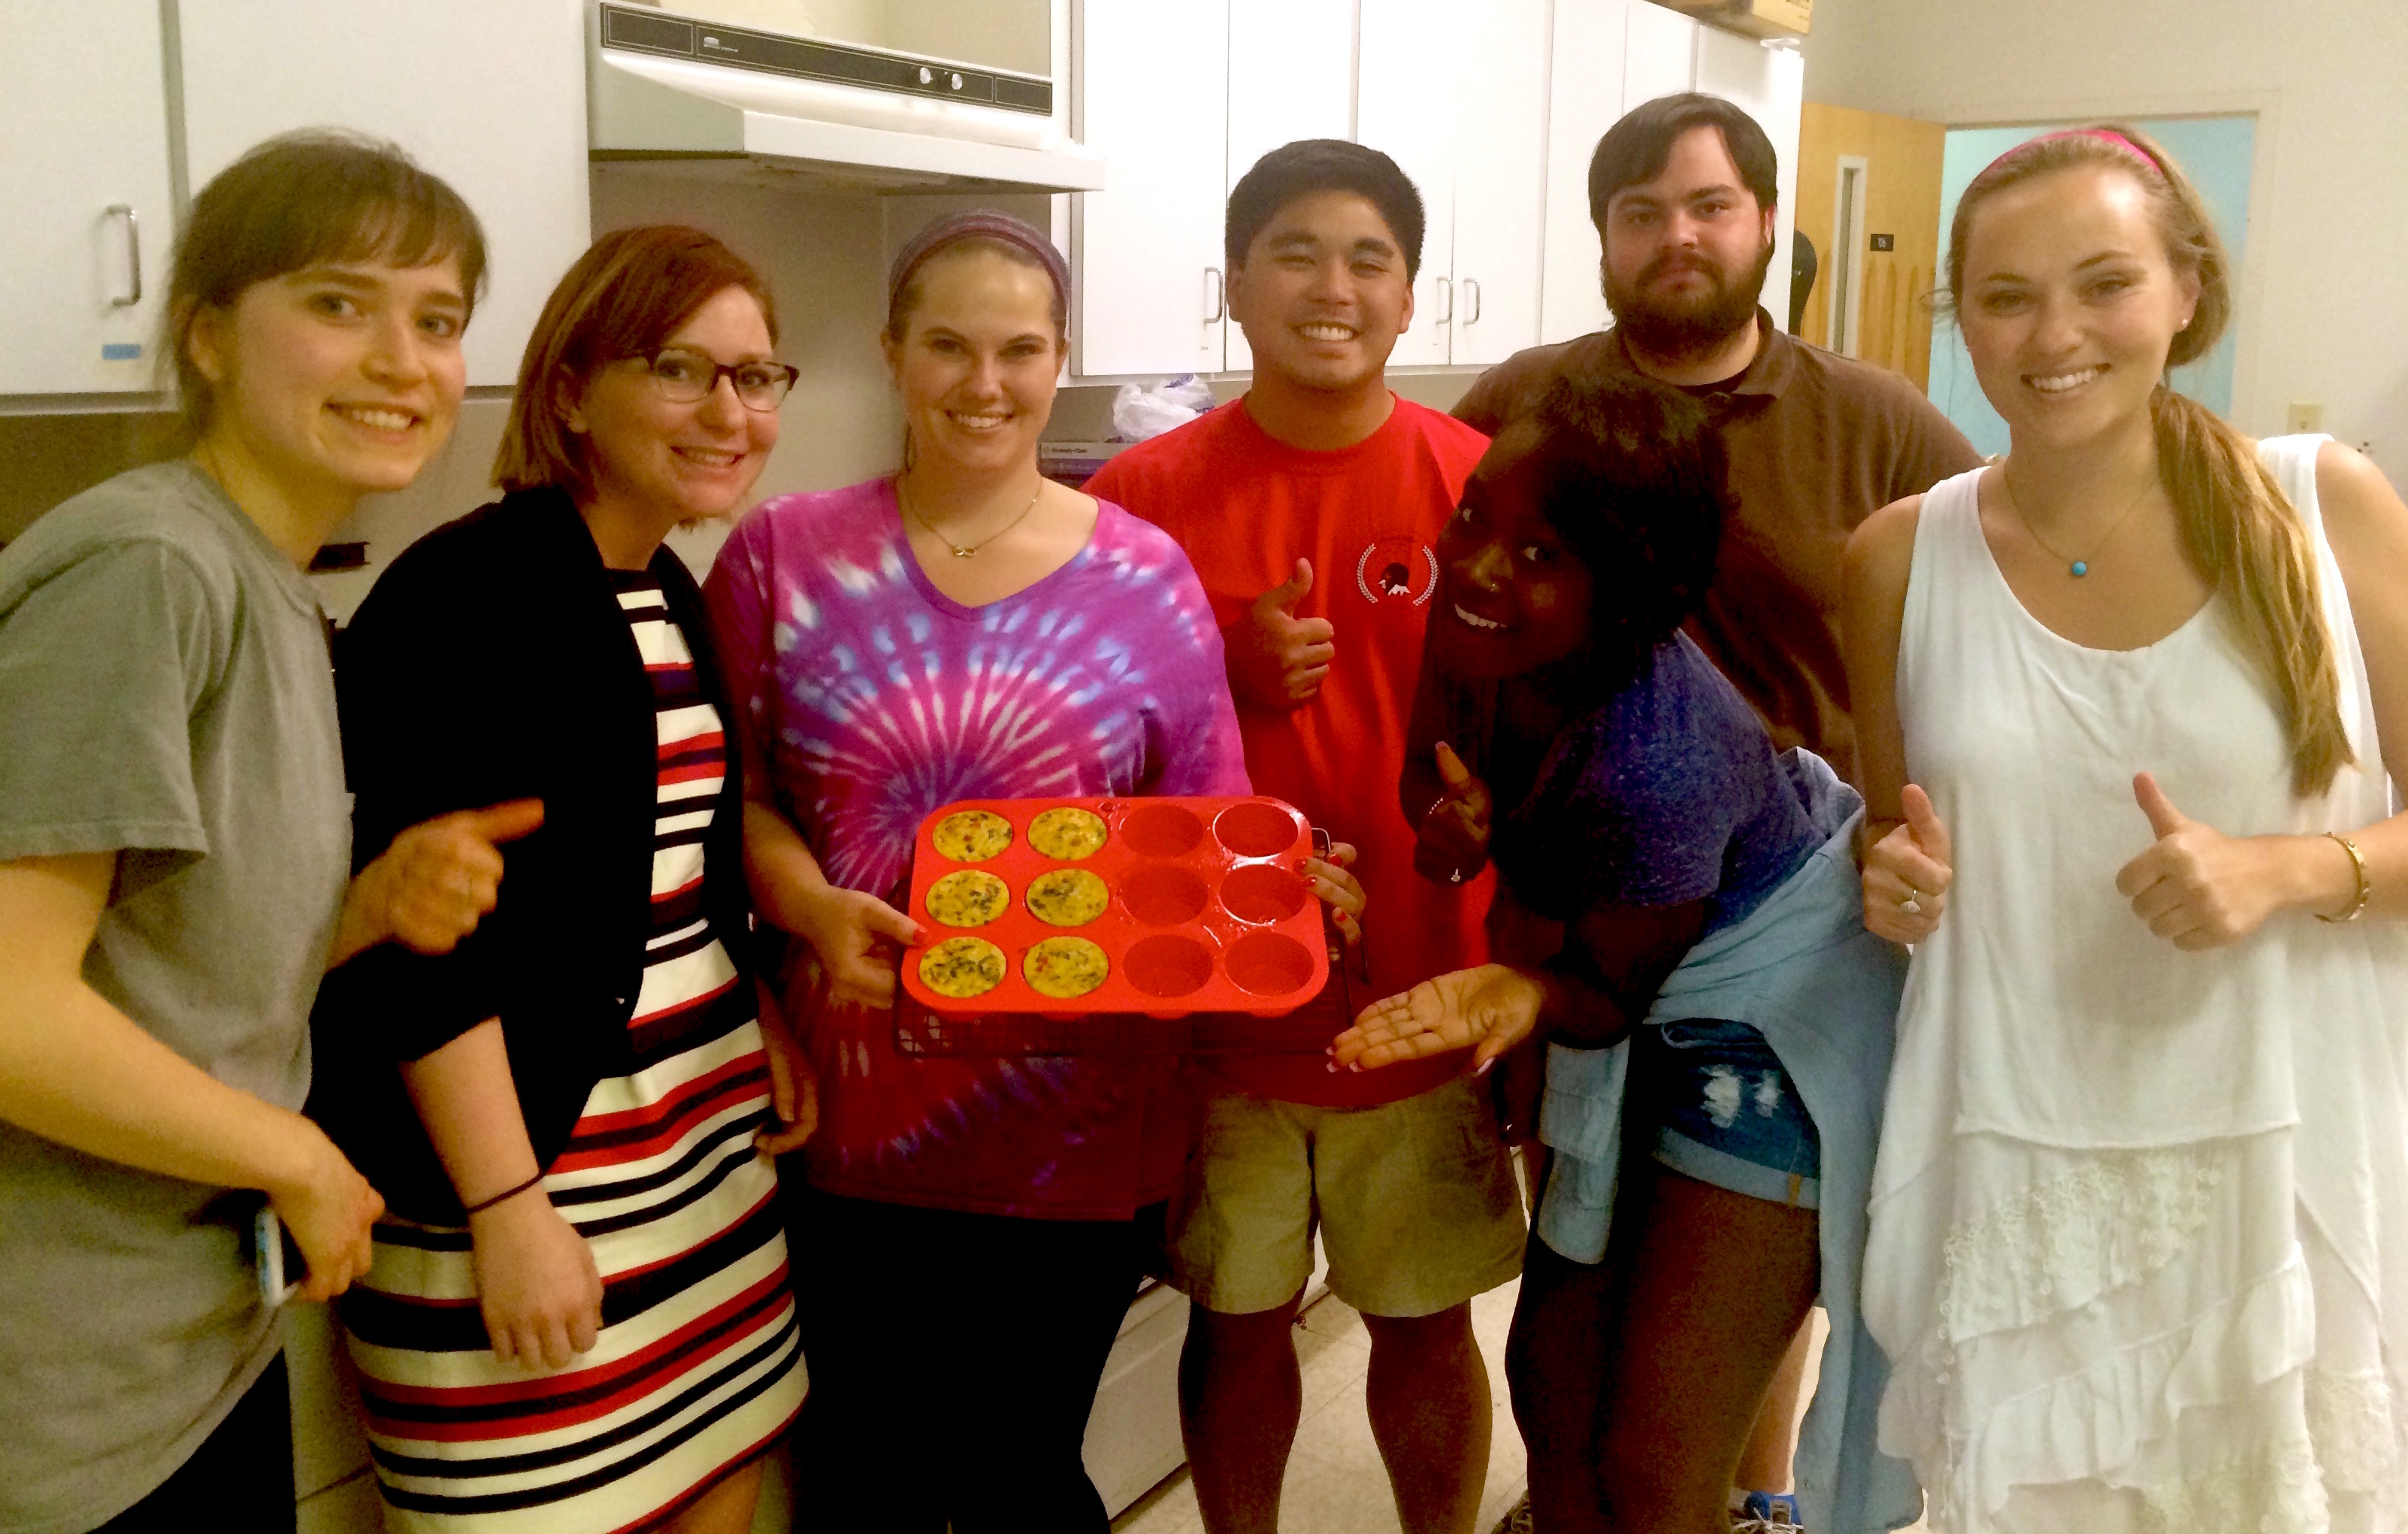 University of Georgia food science students have created a bread-free, microwavable breakfast sandwich that, if marketed, would fill a need for consumers on low-carbohydrate or gluten-free diets. The team consisted of Juliana Fritts, Adam Gresham, Brooke Oot, Shemaine Mensah, Meredith Meyer, Sara Muntean and Faustine Sonon.